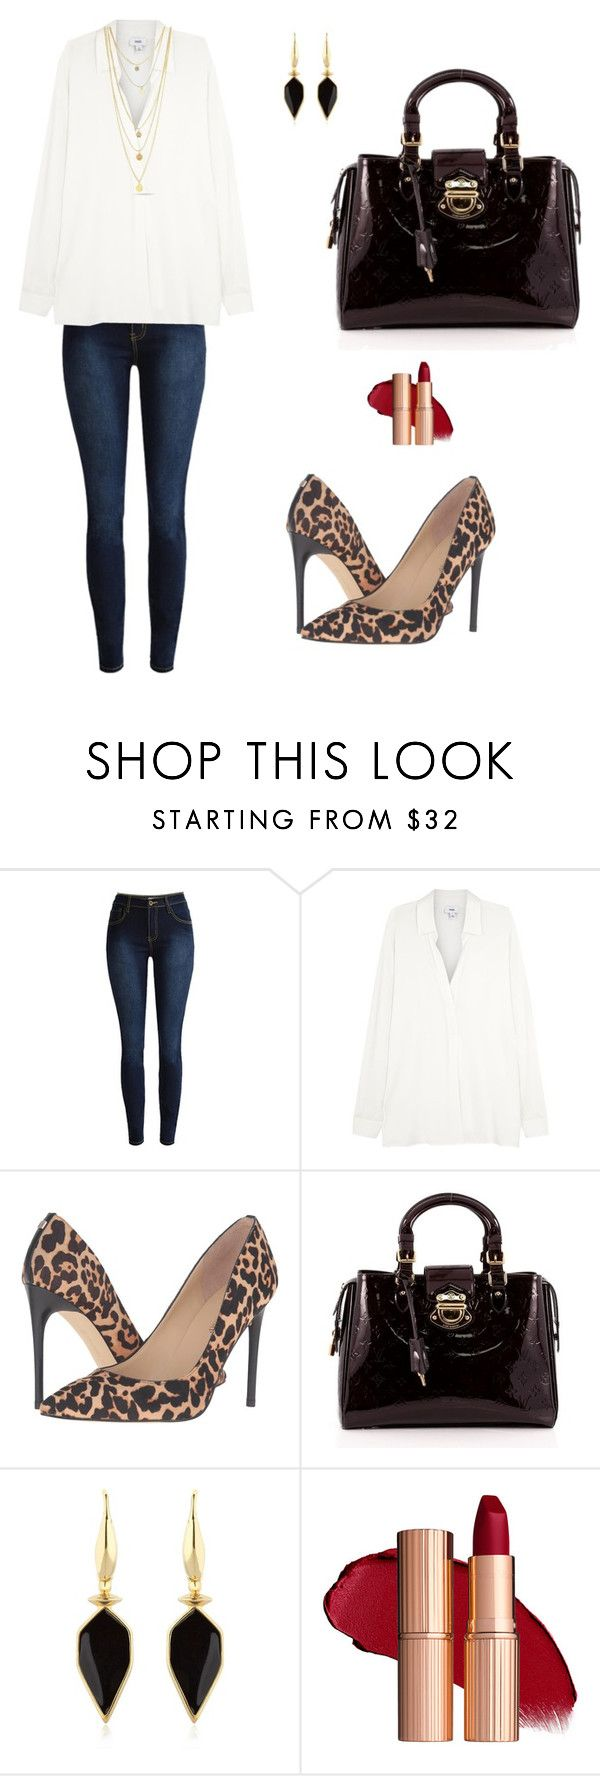 """Untitled #251"" by mariafilomena471 ❤ liked on Polyvore featuring Vince, Ivanka Trump, Louis Vuitton and Isabel Marant"